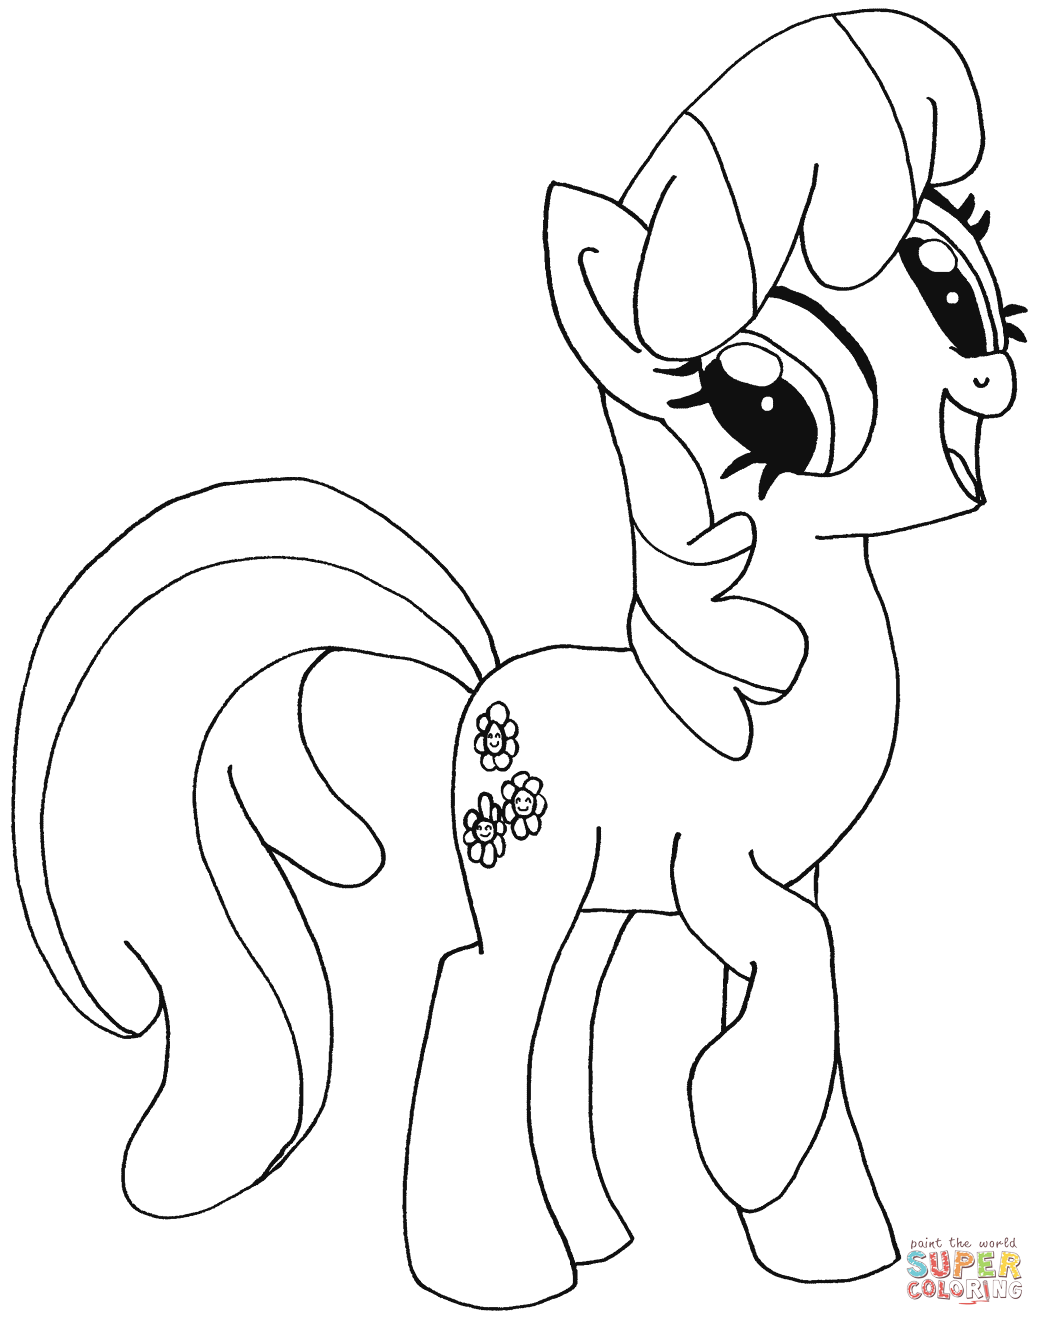 My Little Pony Coloring Pages Pony Coloring Pages Mlp Coloring Pages